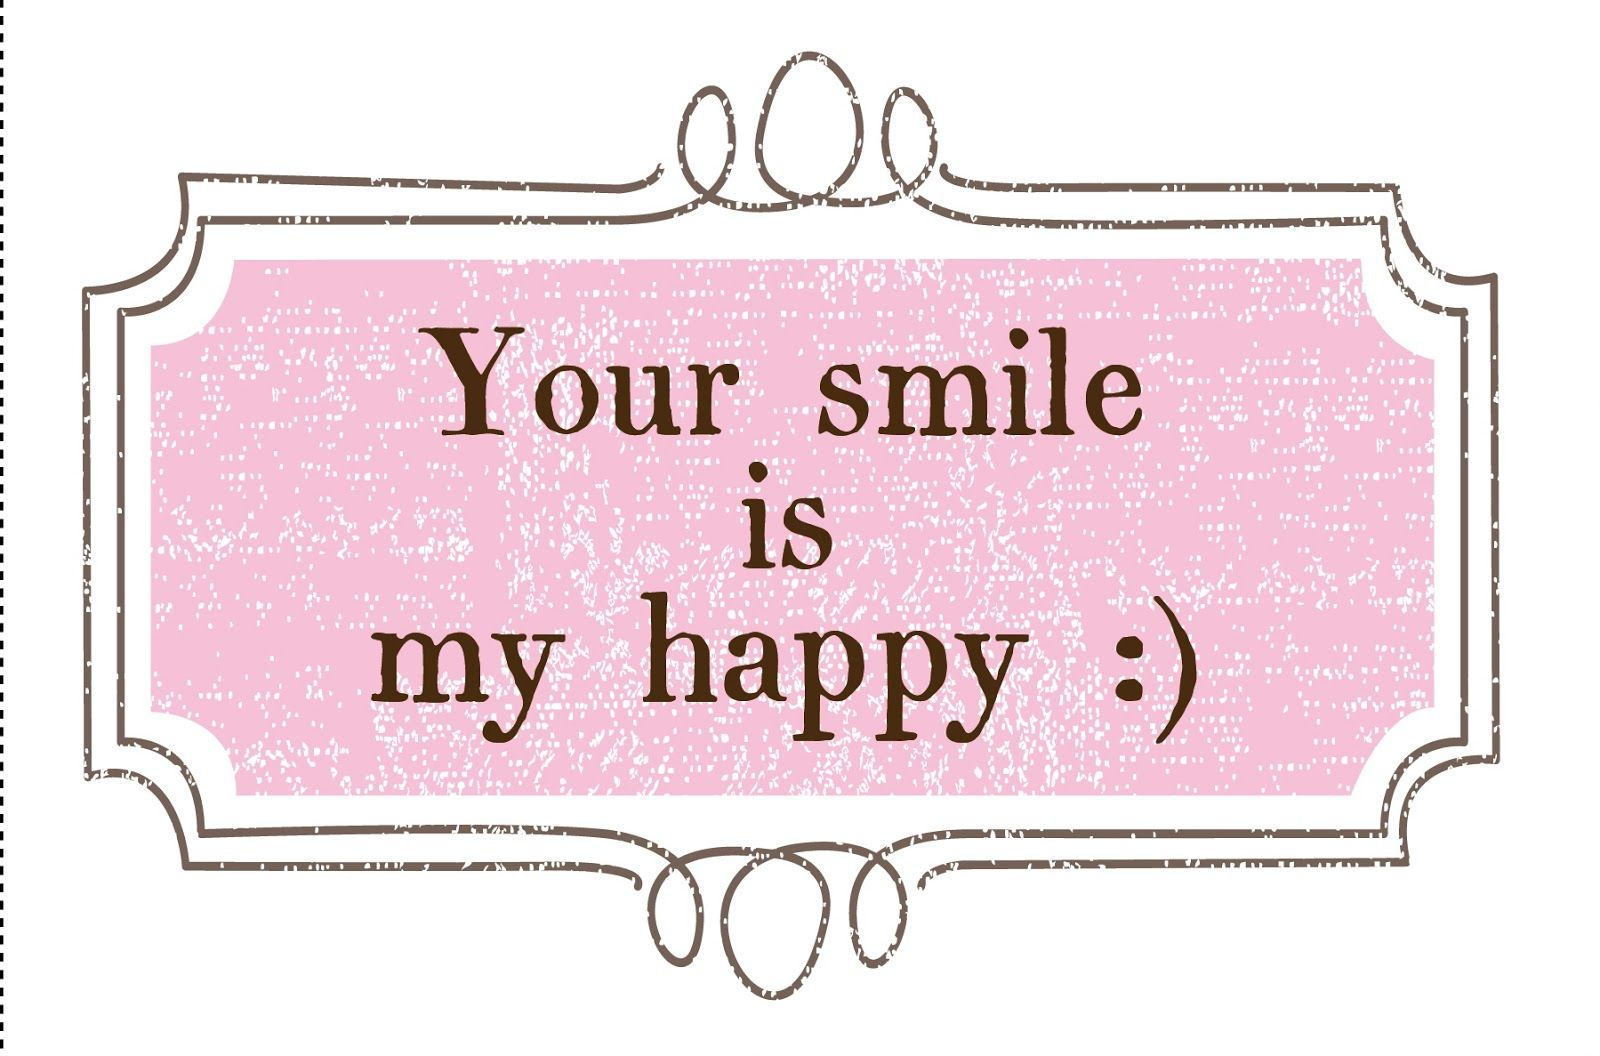 smile quotes - Google Search | Happy quotes smile, My ...